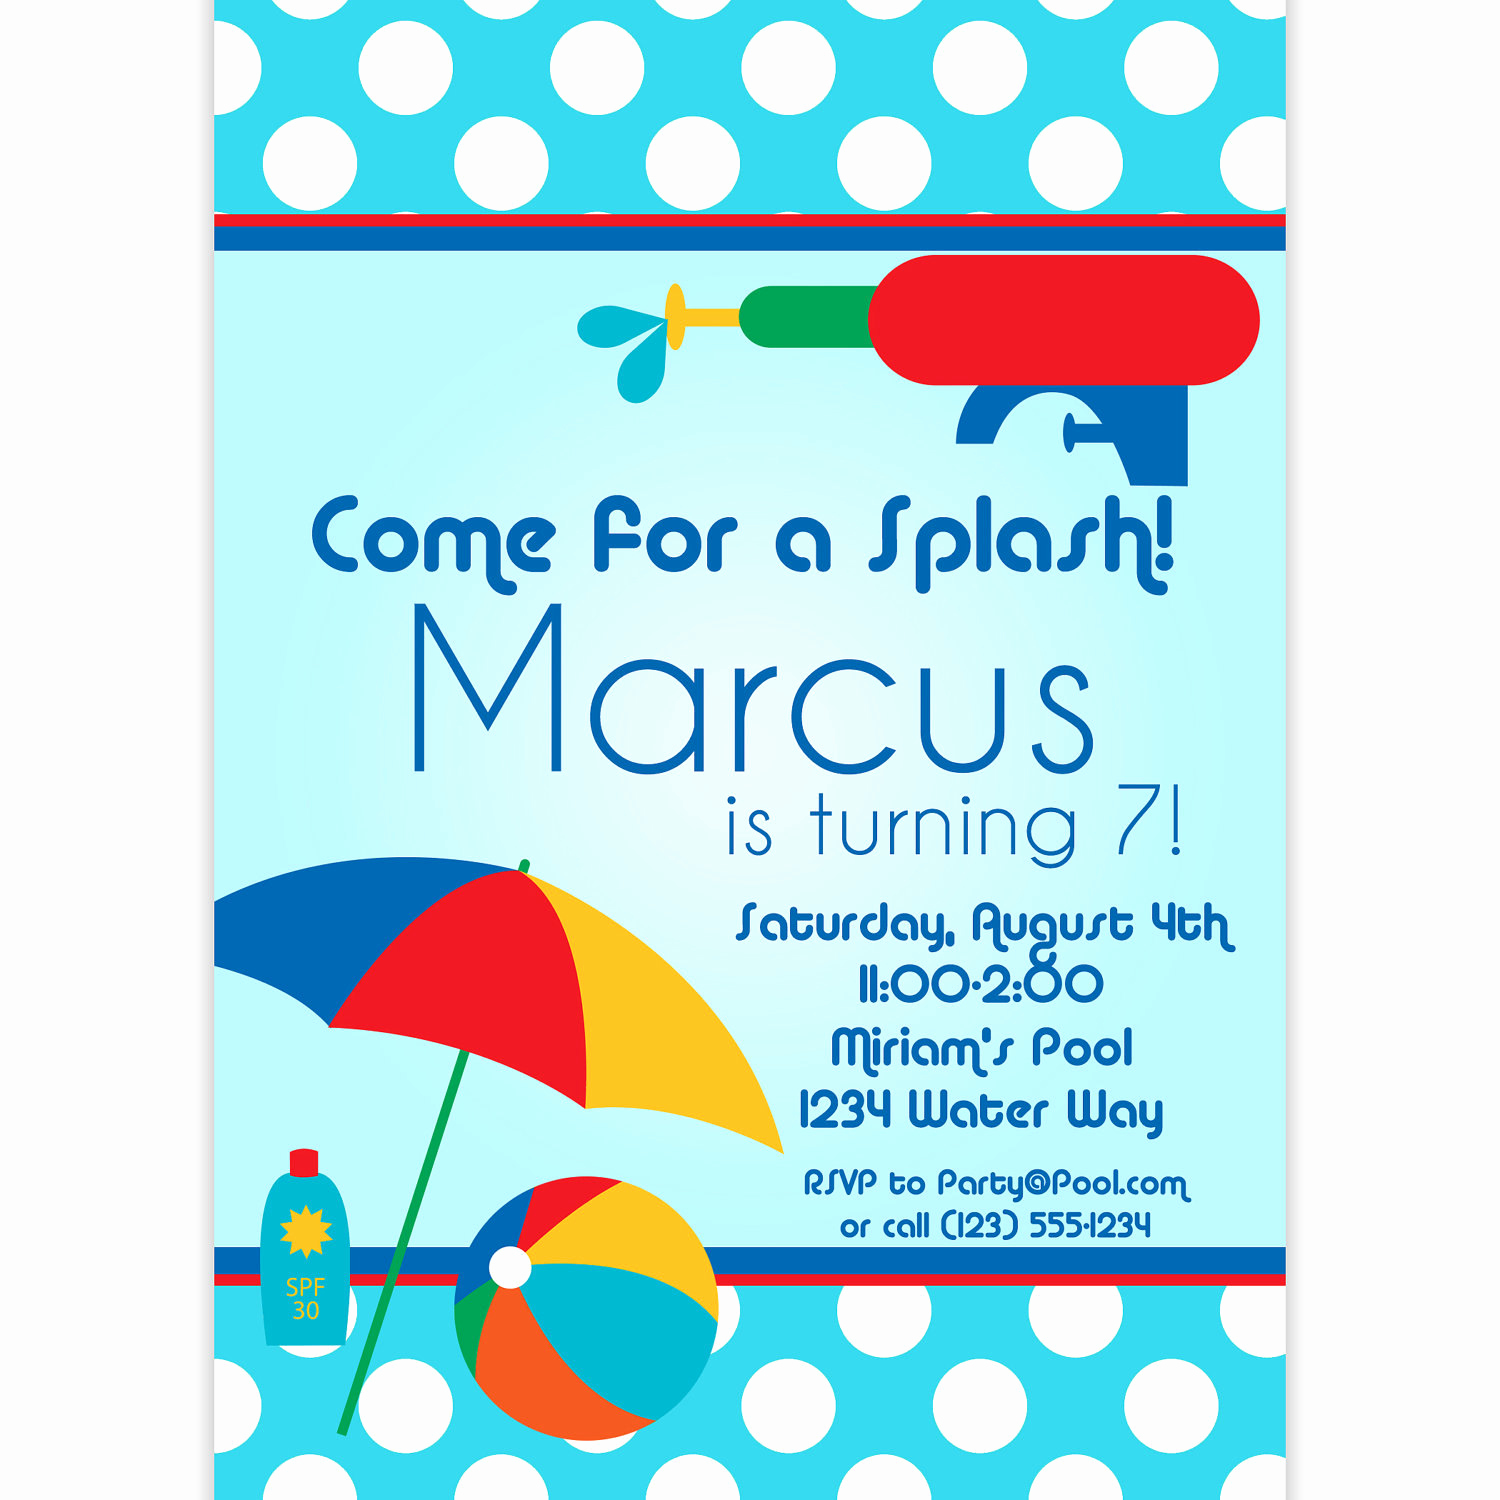 Kids Pool Party Invitation Elegant Pool Party Invitation Blue Polka Dots and Red Water Squirt